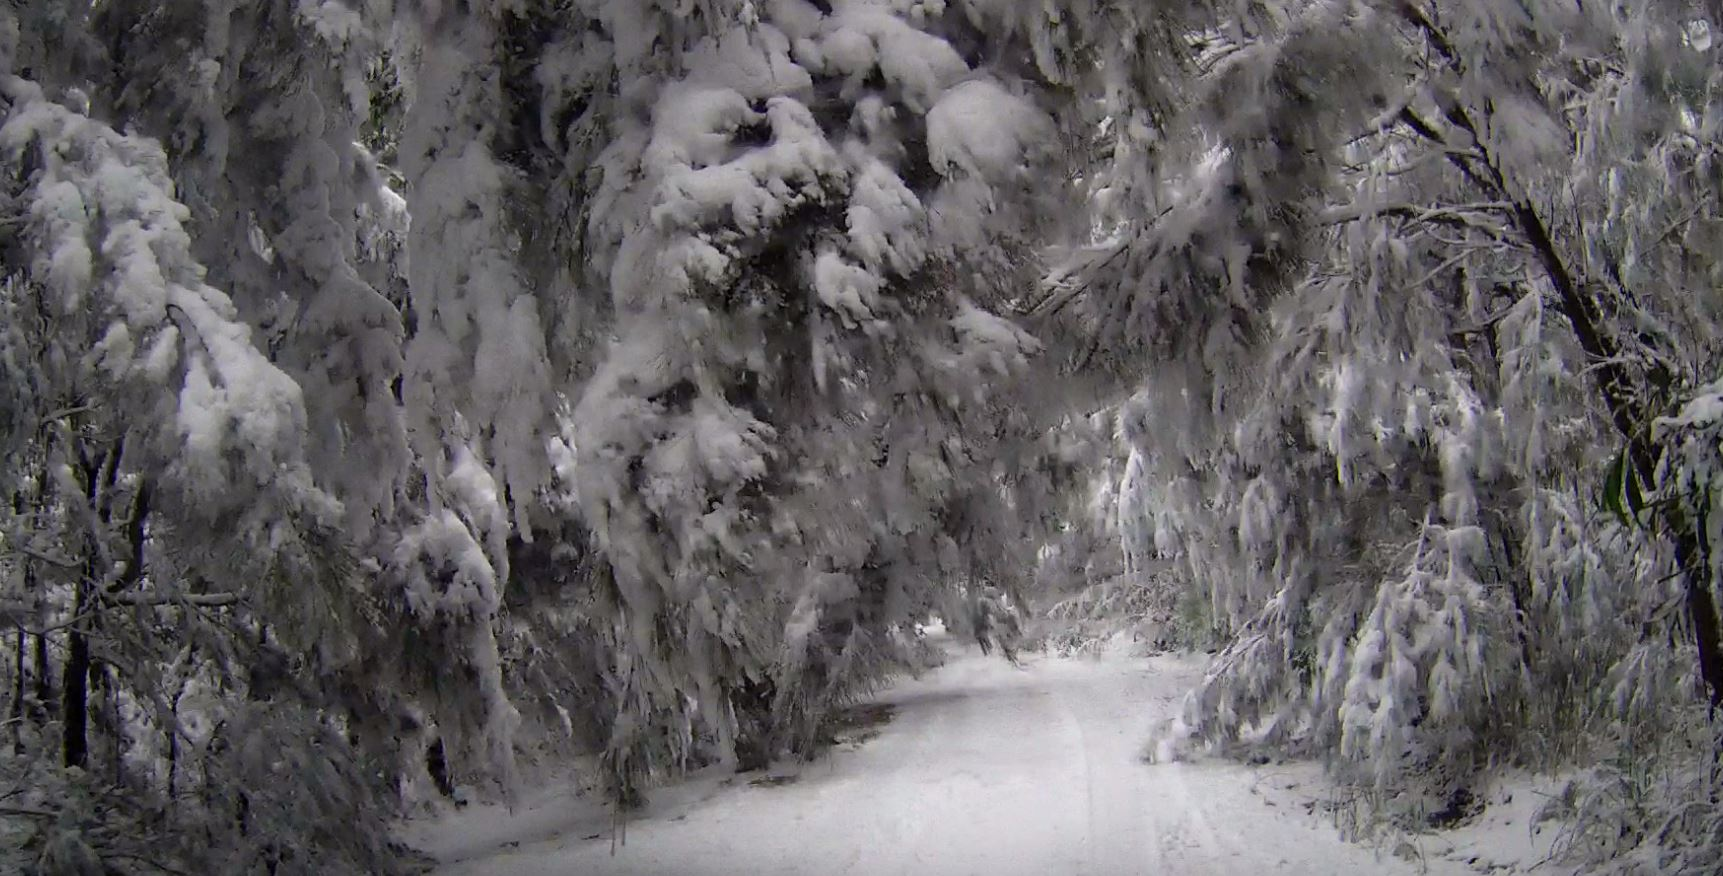 Snow blankets the road through Girraween National Park.